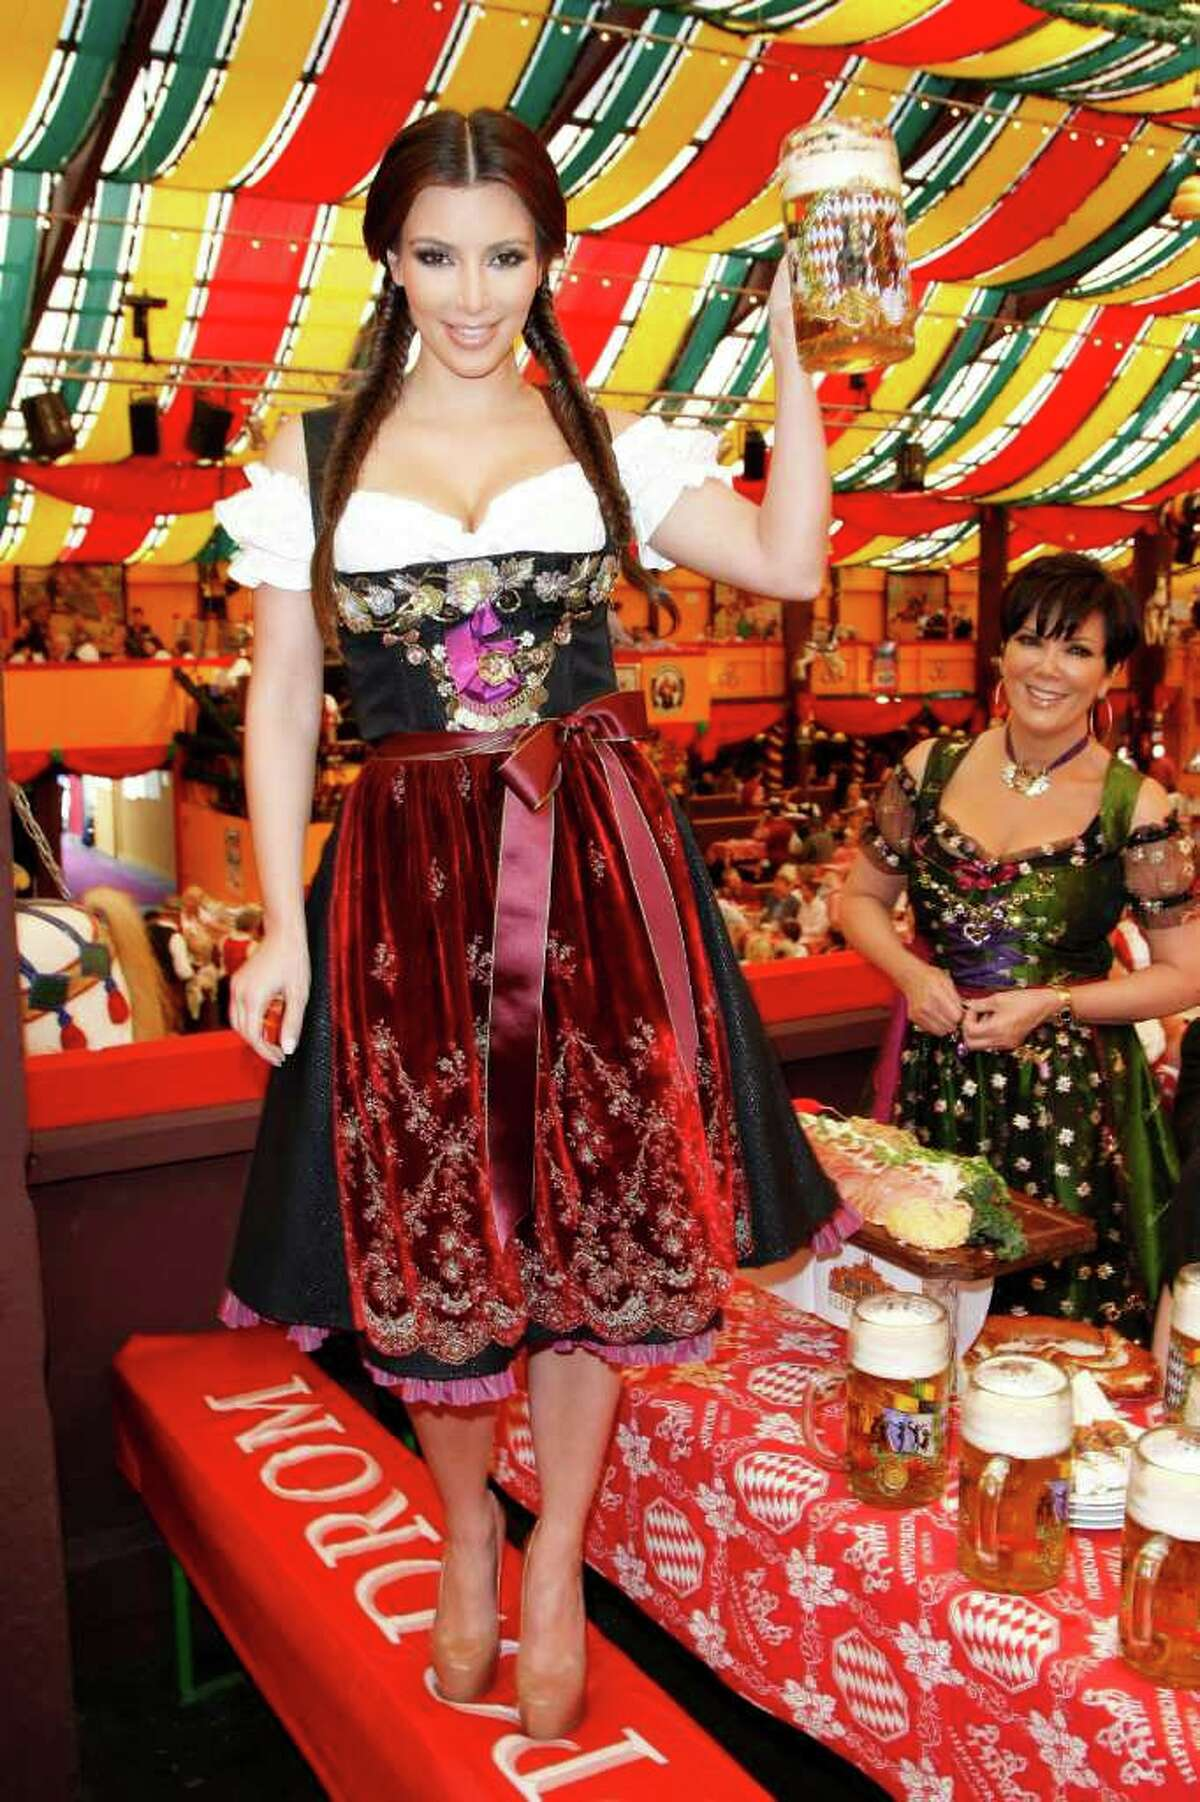 MUNICH, GERMANY - SEPTEMBER 22: Kim Kardashian (Dirndl/Dress: Lola Paltinger, Lollipop & Alenrock) visits the Oktoberfest 2010 at the Hippodrom tent at Theresienwiese during her Munich visit on September 22, 2010 in Munich, Germany. (Photo by Florian Seefried/Getty Images) *** Local Caption *** Kim Kardashian